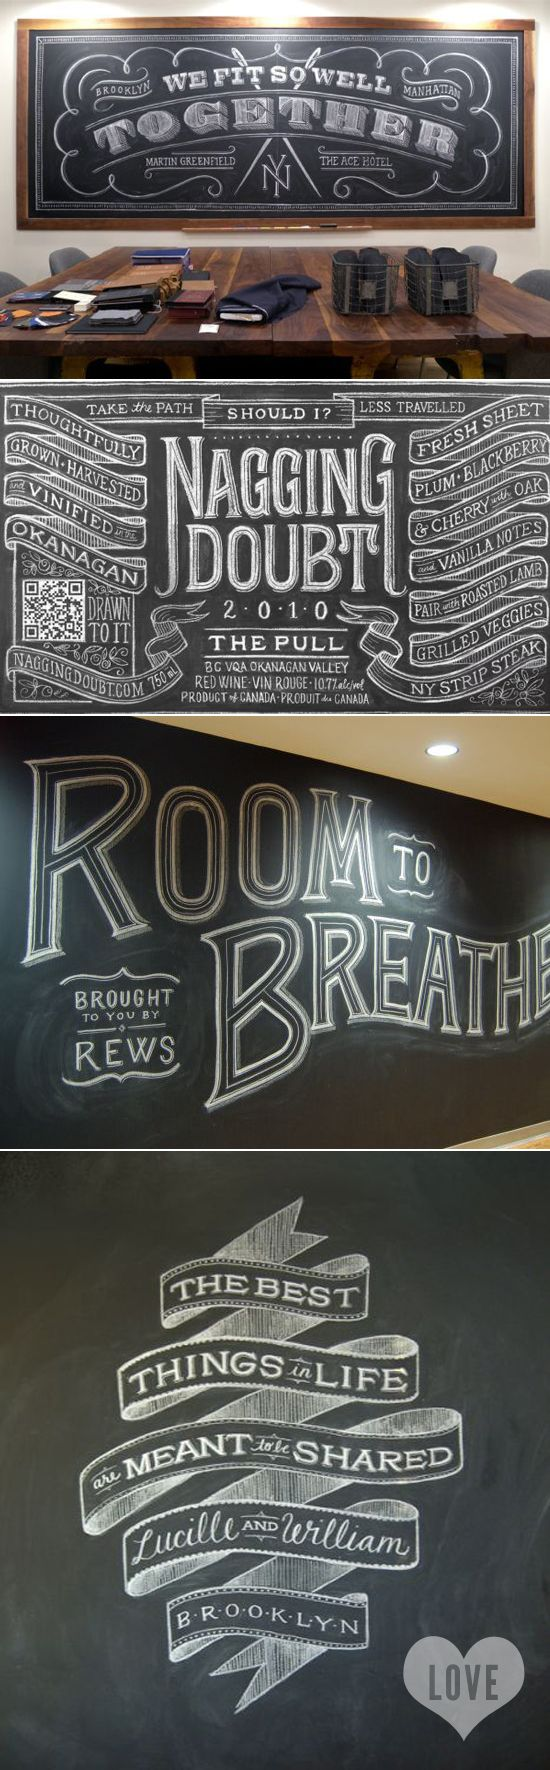 dana tanamachi inspired to share - chalkboard art